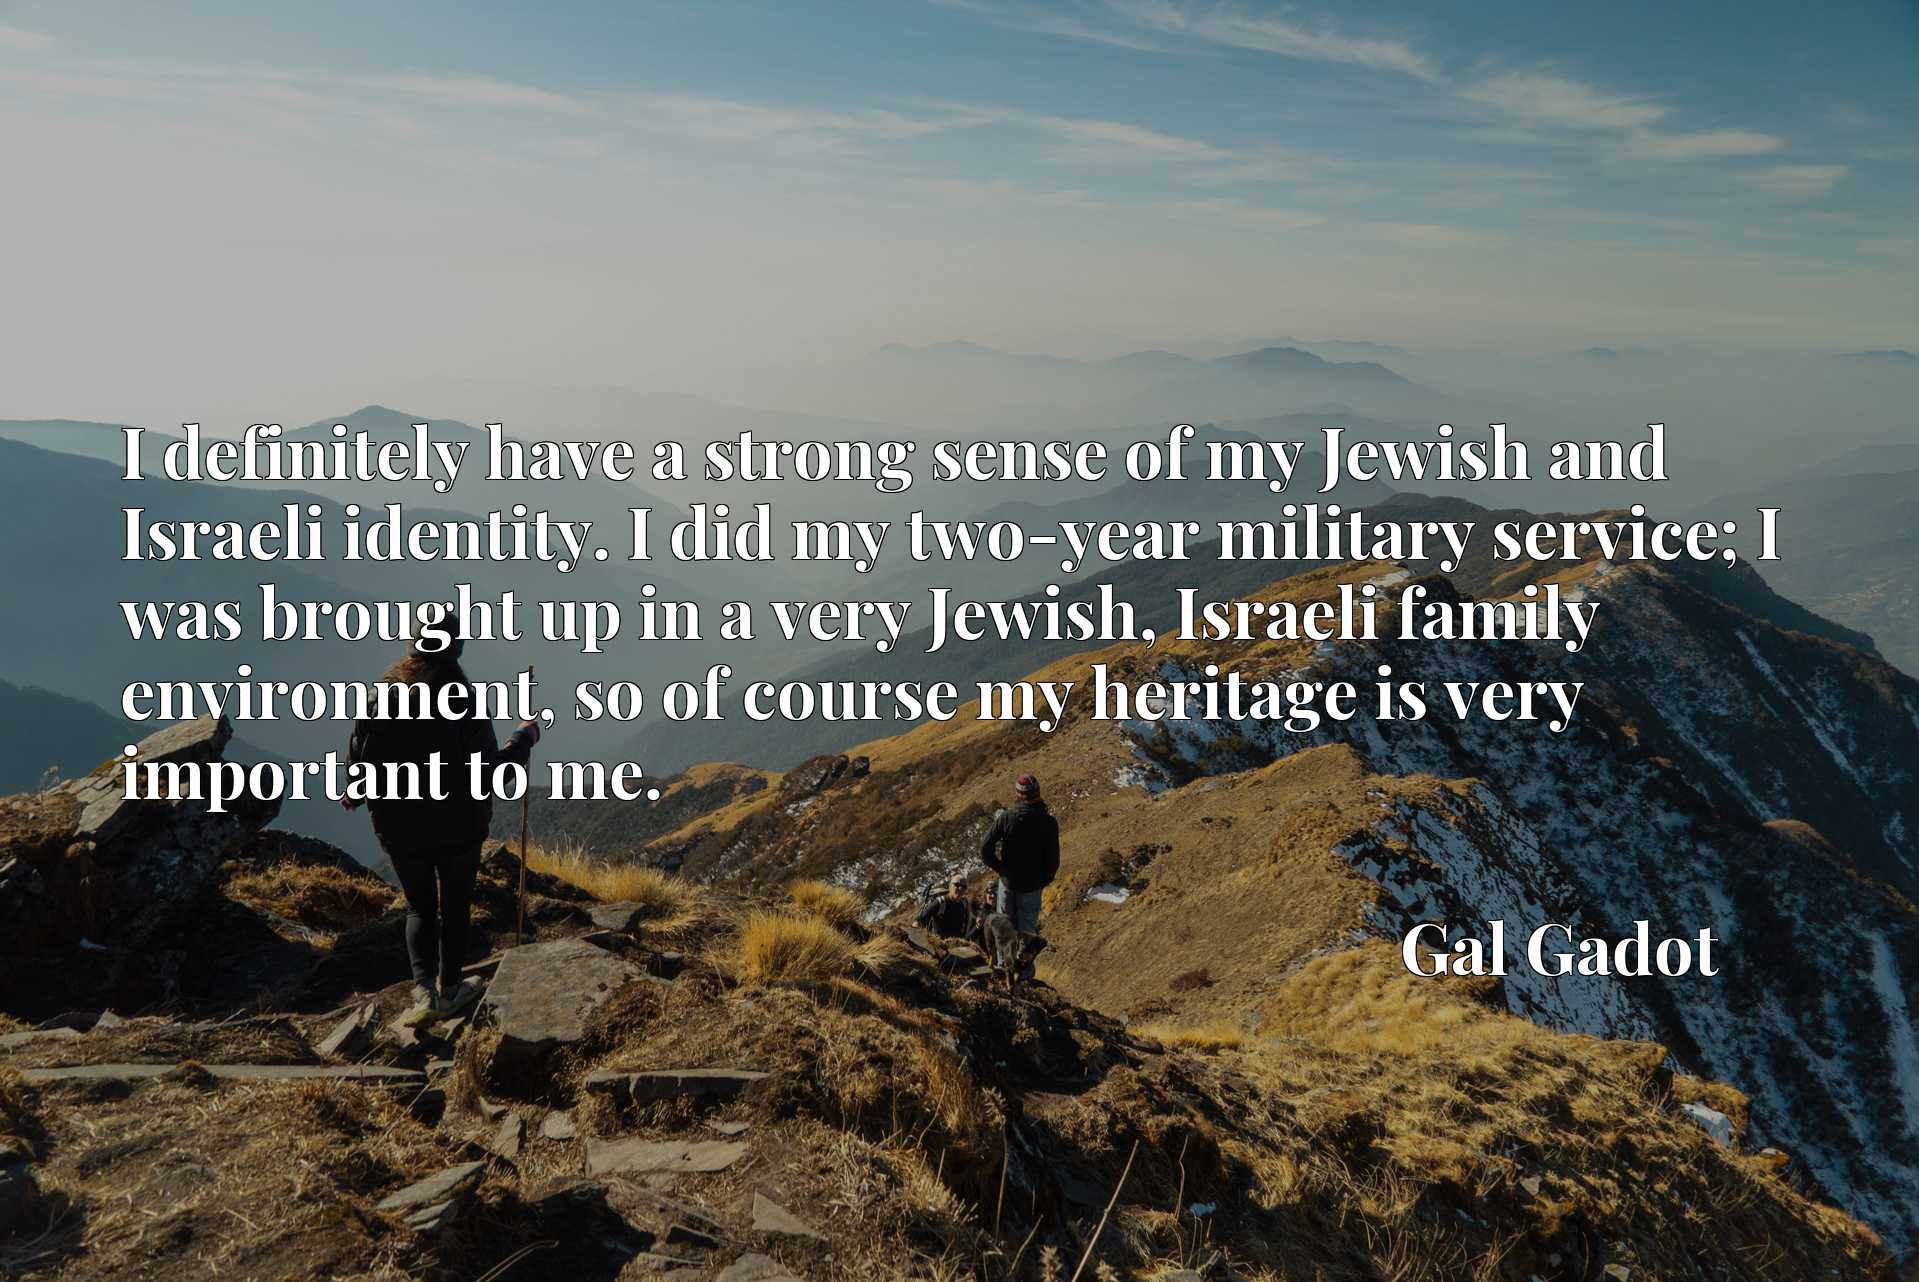 I definitely have a strong sense of my Jewish and Israeli identity. I did my two-year military service; I was brought up in a very Jewish, Israeli family environment, so of course my heritage is very important to me.